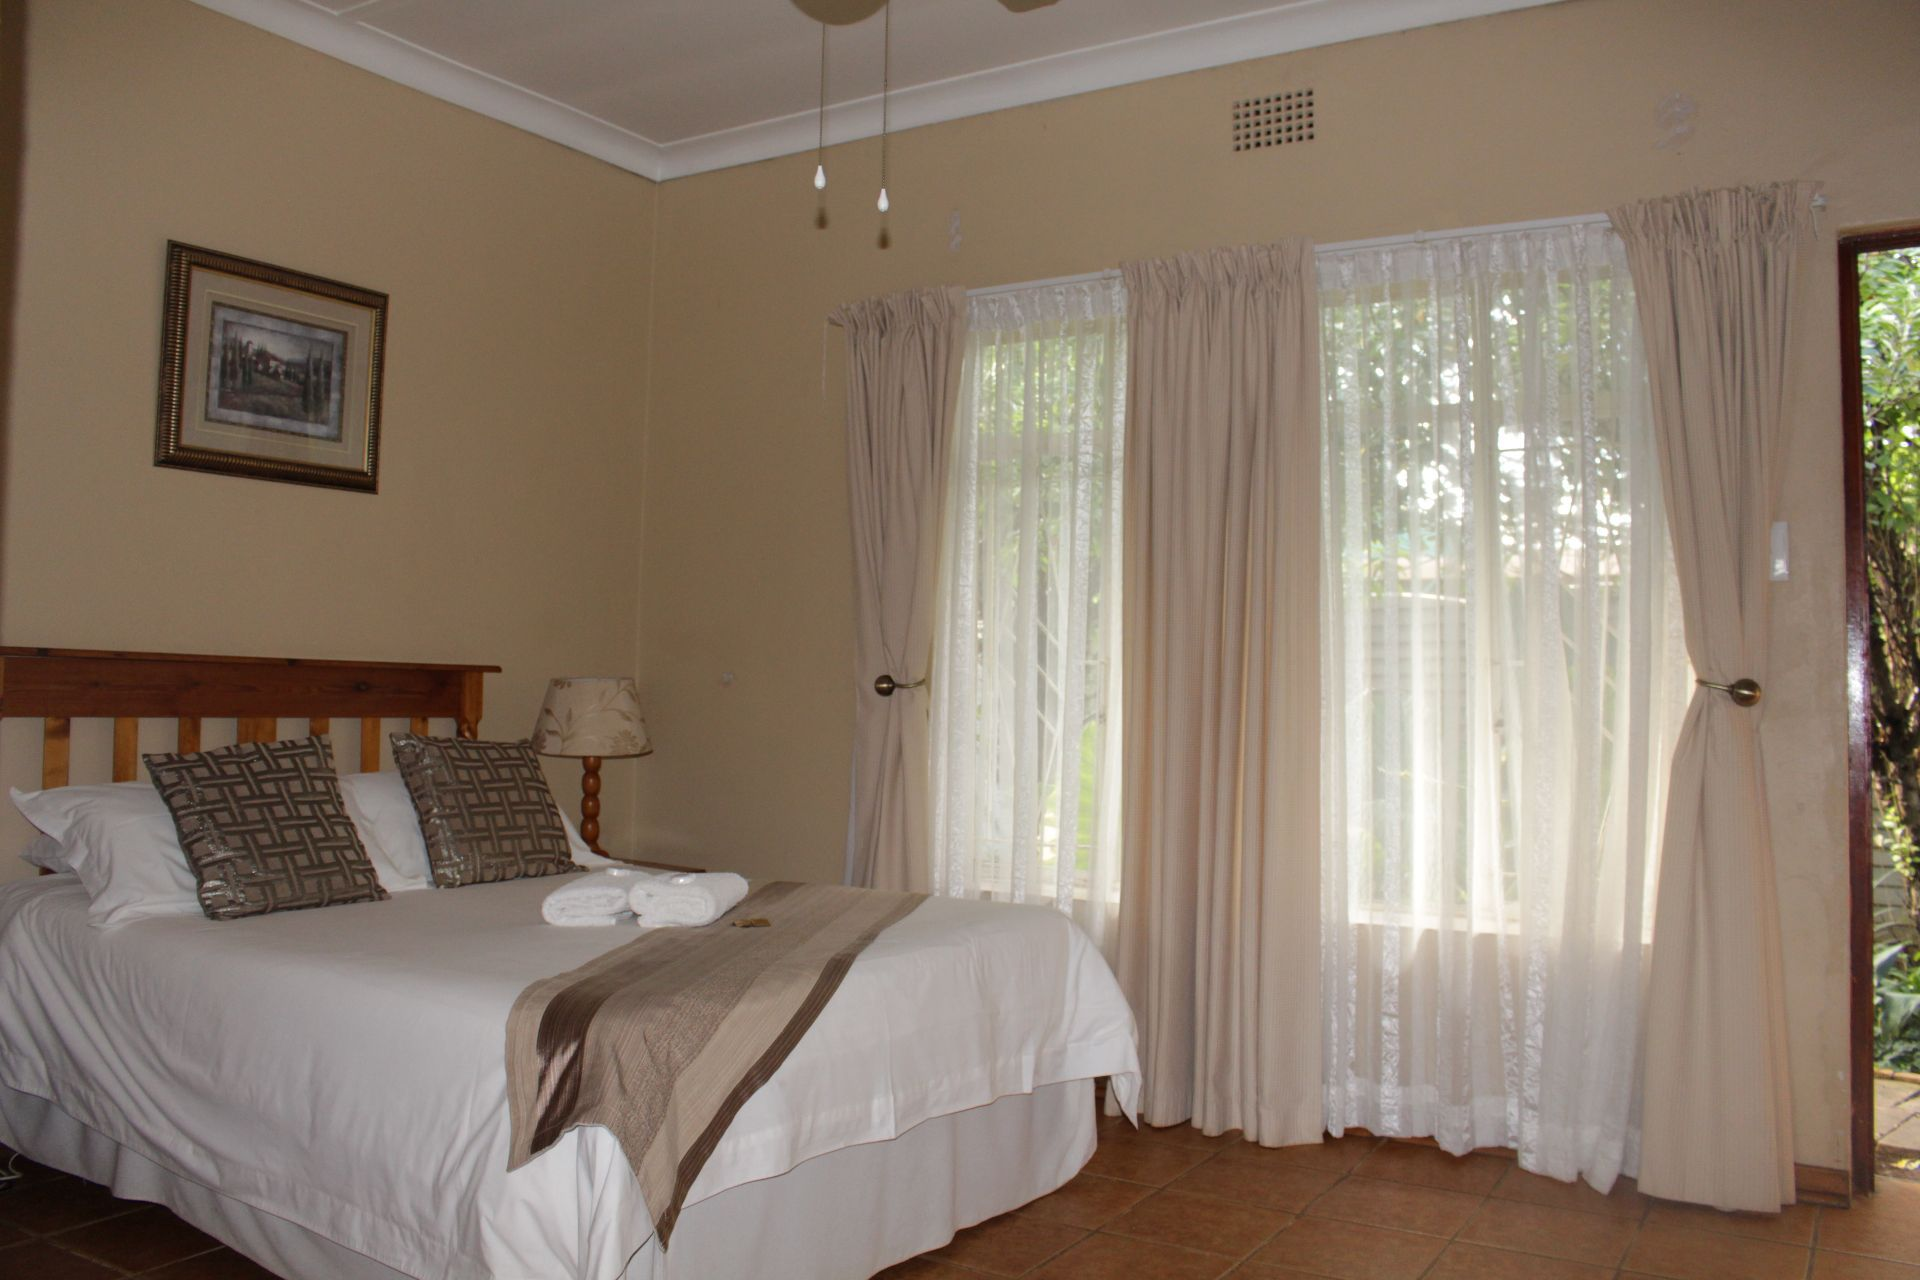 Potchefstroom Central property for sale. Ref No: 13623699. Picture no 20